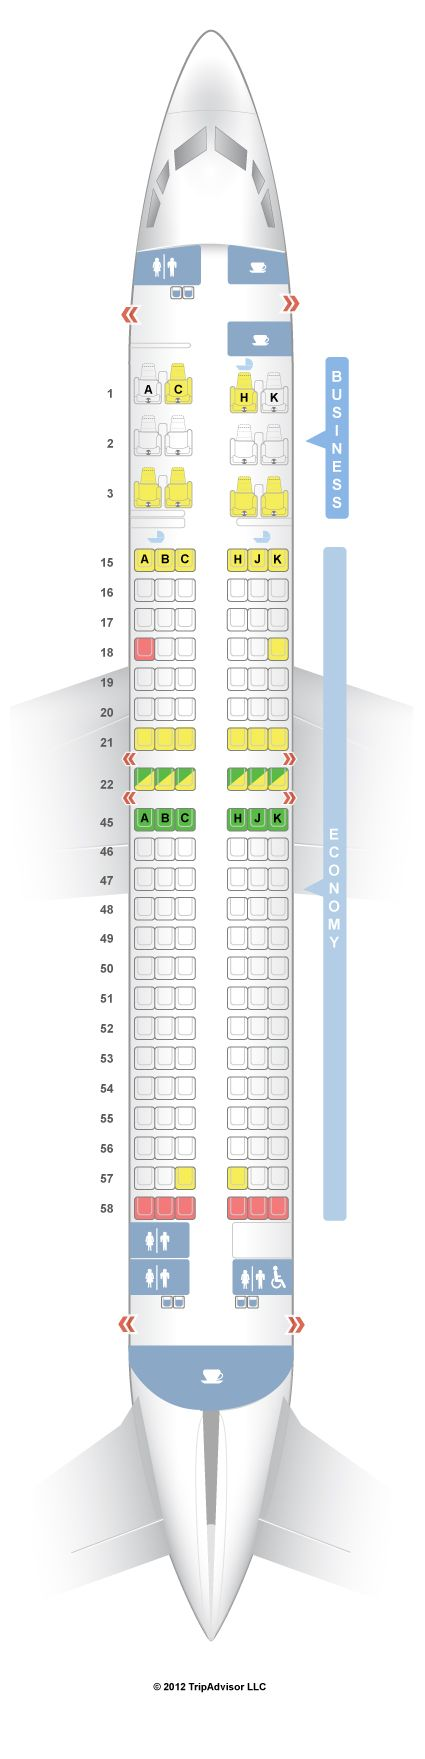 SeatGuru Seat Map Japan Airlines Boeing 737-800 (738) Intl